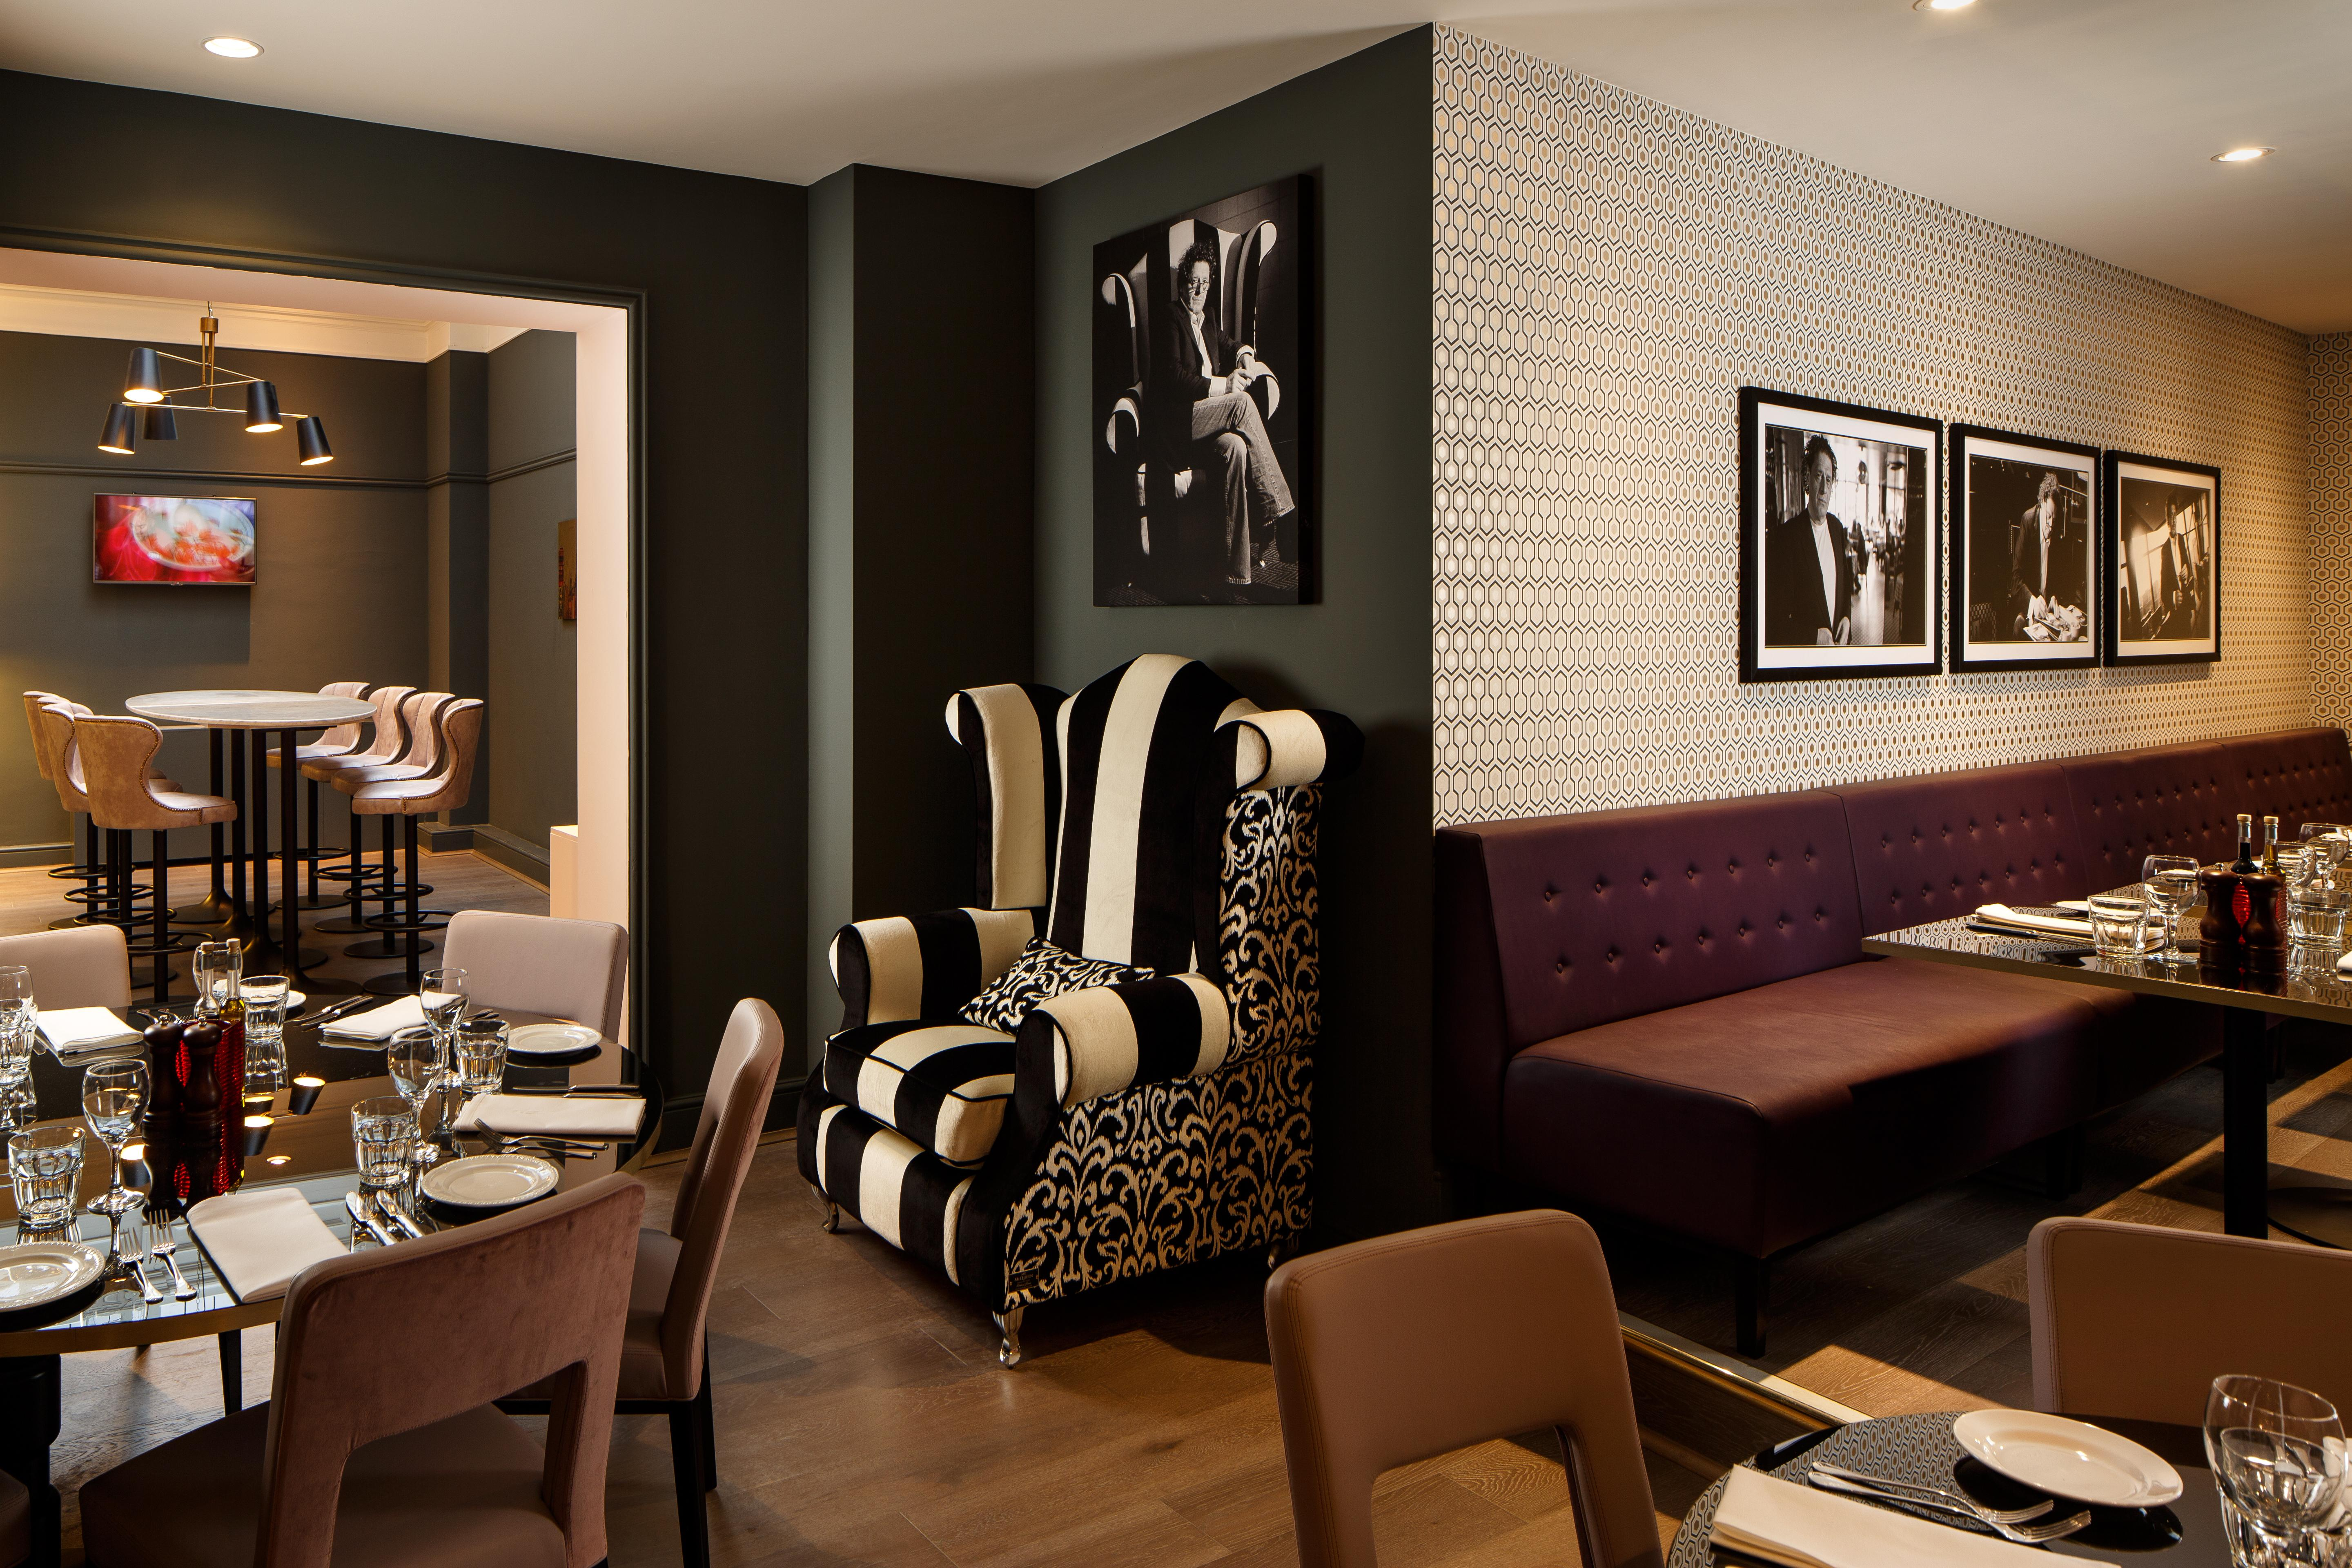 Image of Marco's New York Italian by Marco Pierre White, Leicester